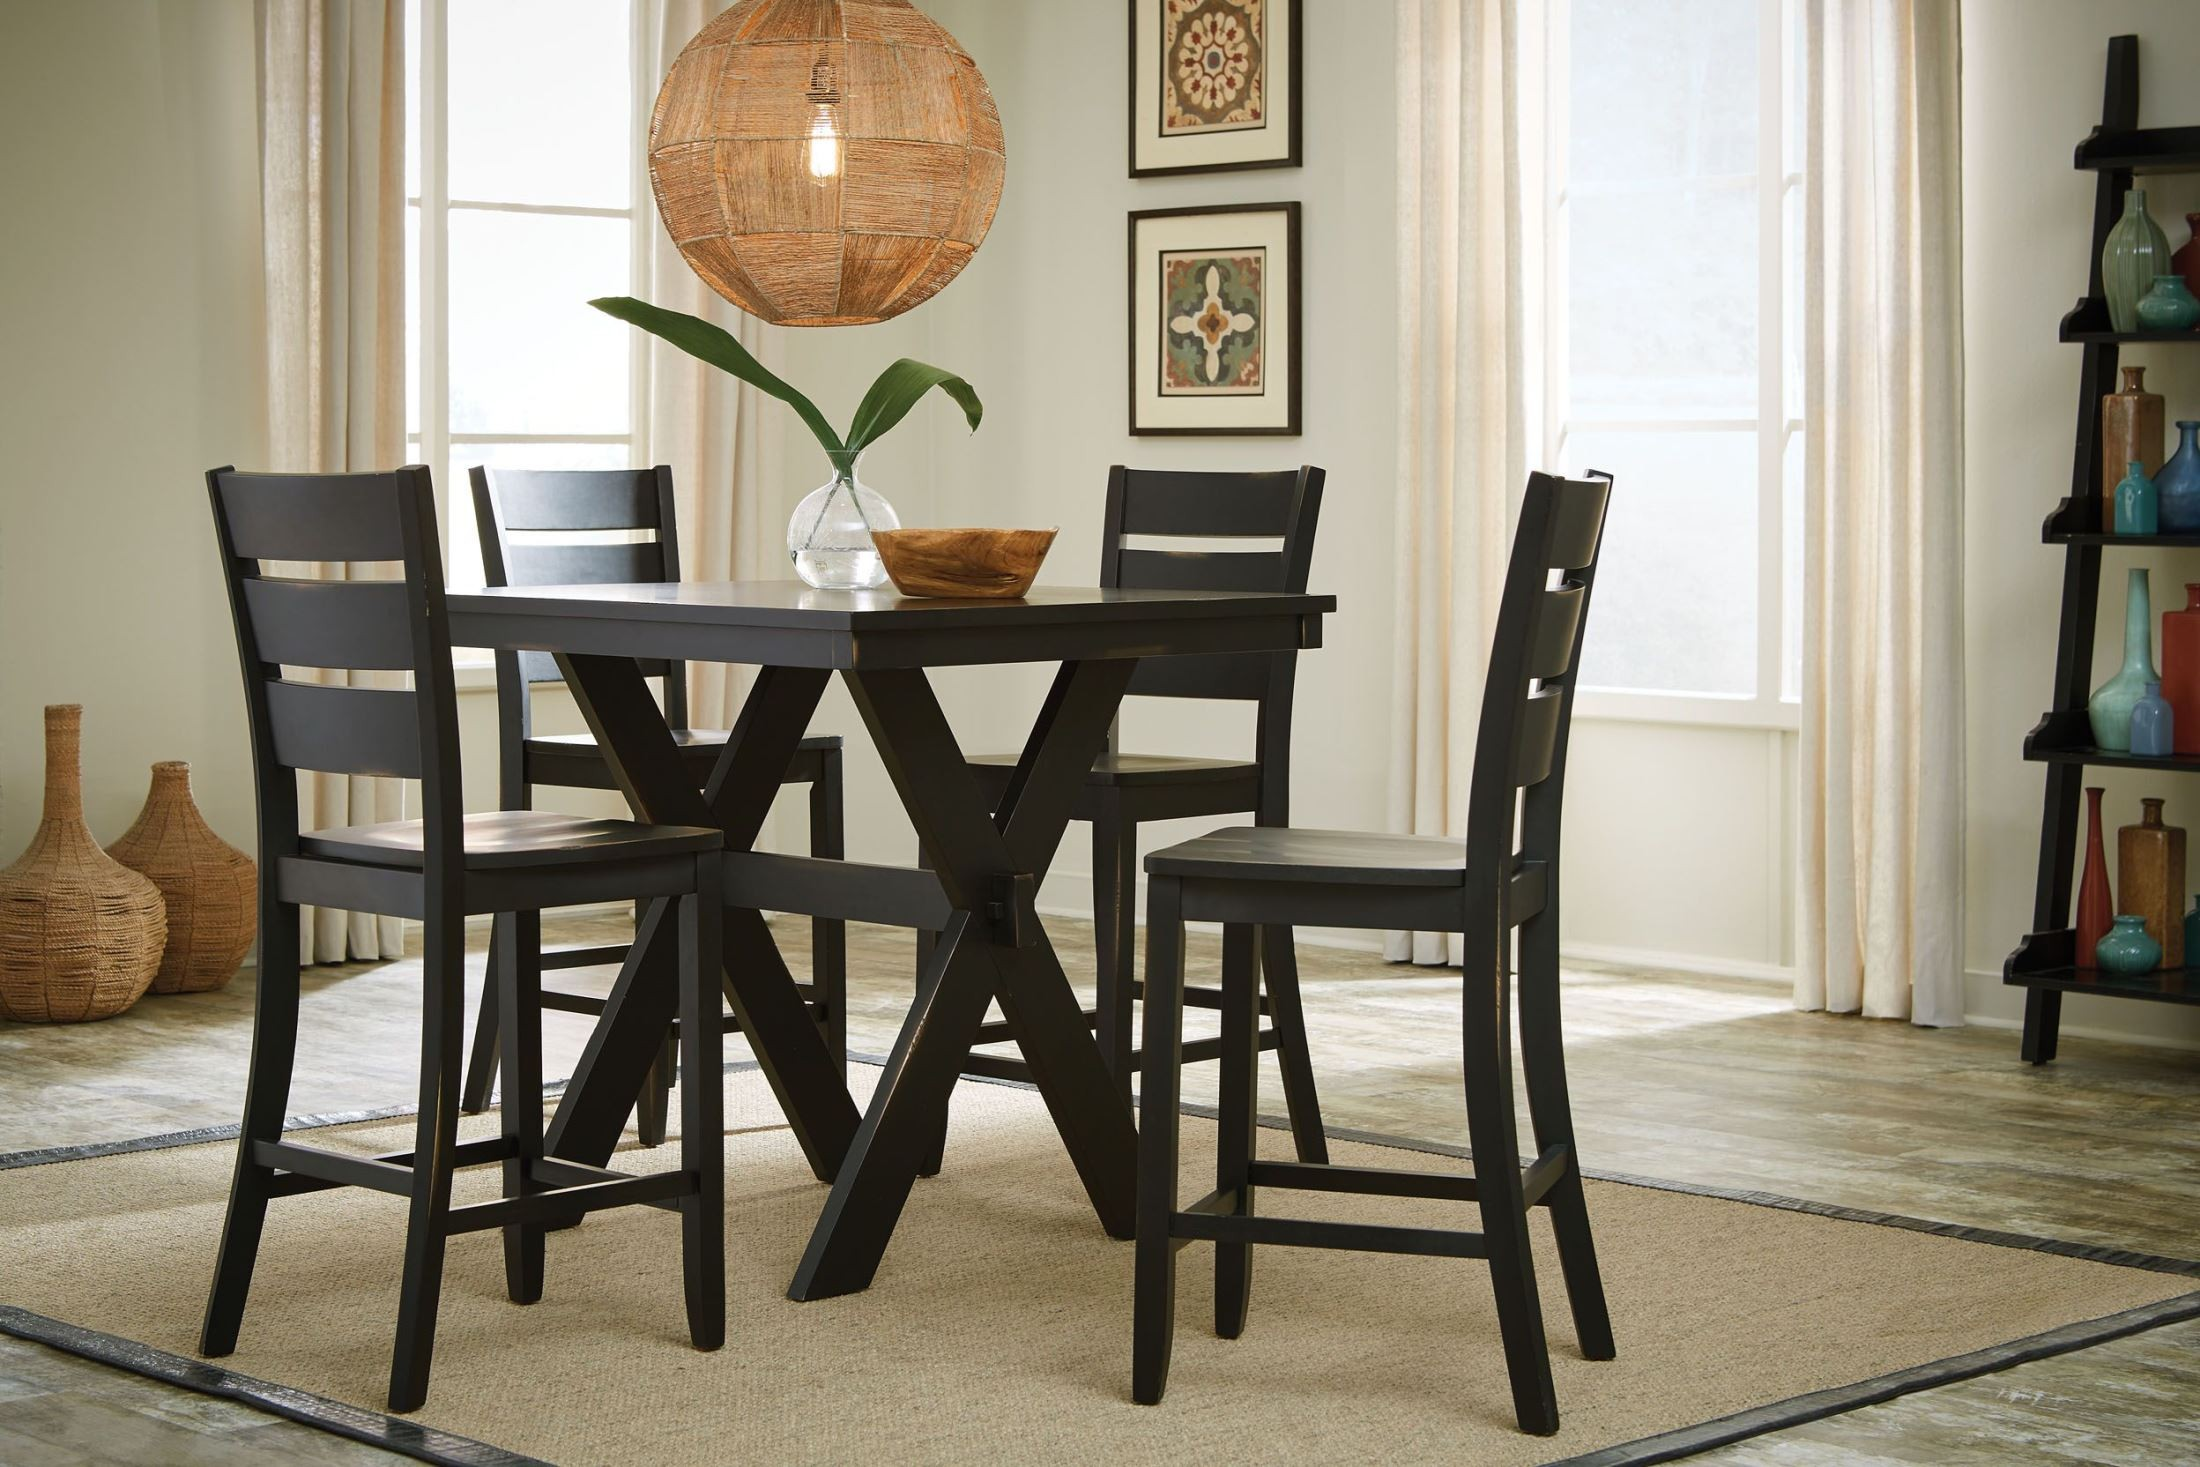 Costa Distressed Black 5 Piece Counter Height Dining Room